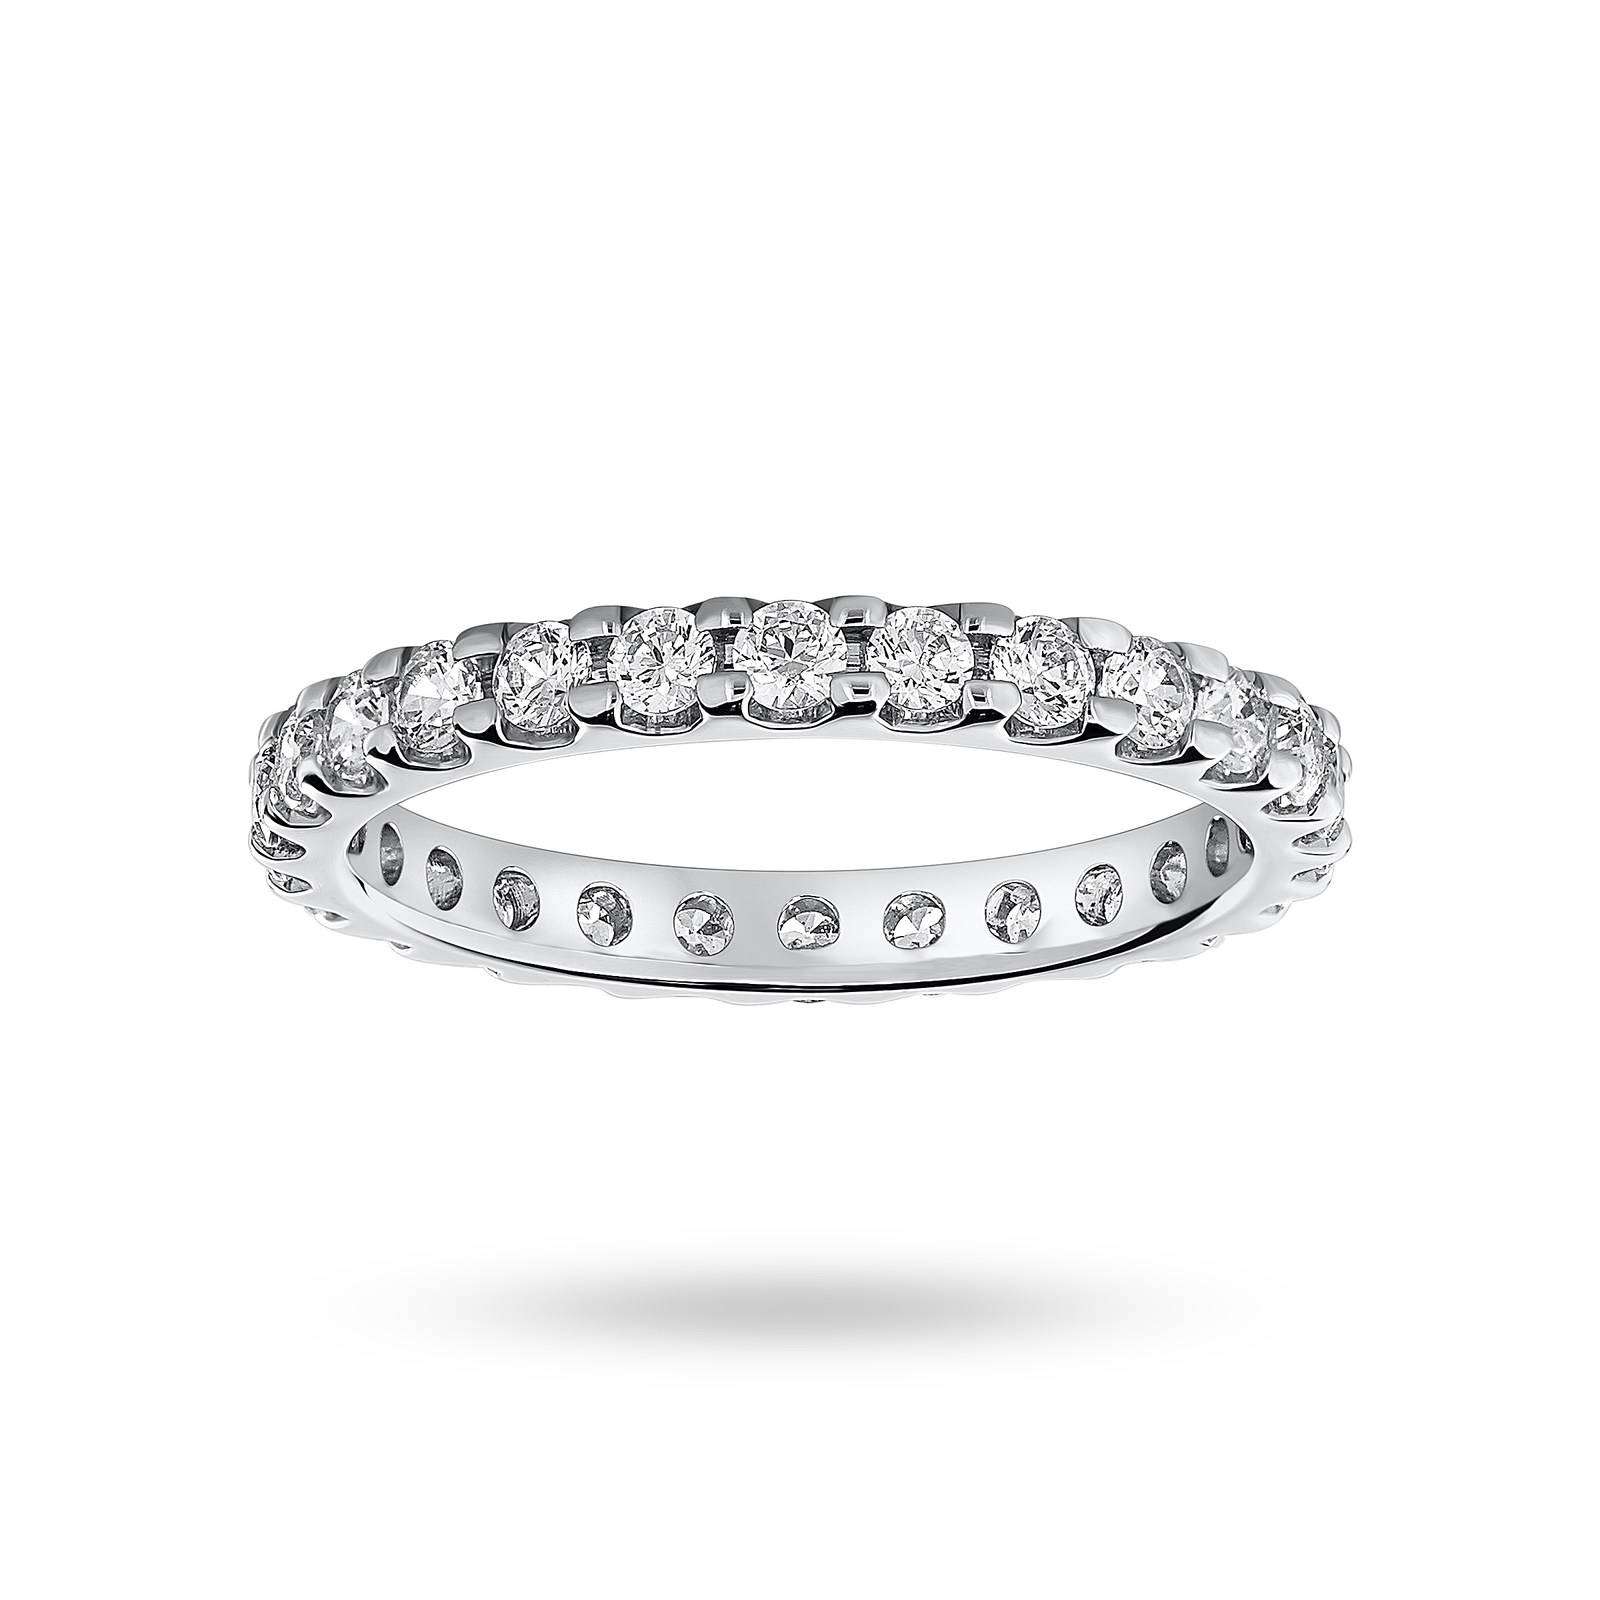 18ct White Gold 1.00cttw Diamond Full Eternity Ring